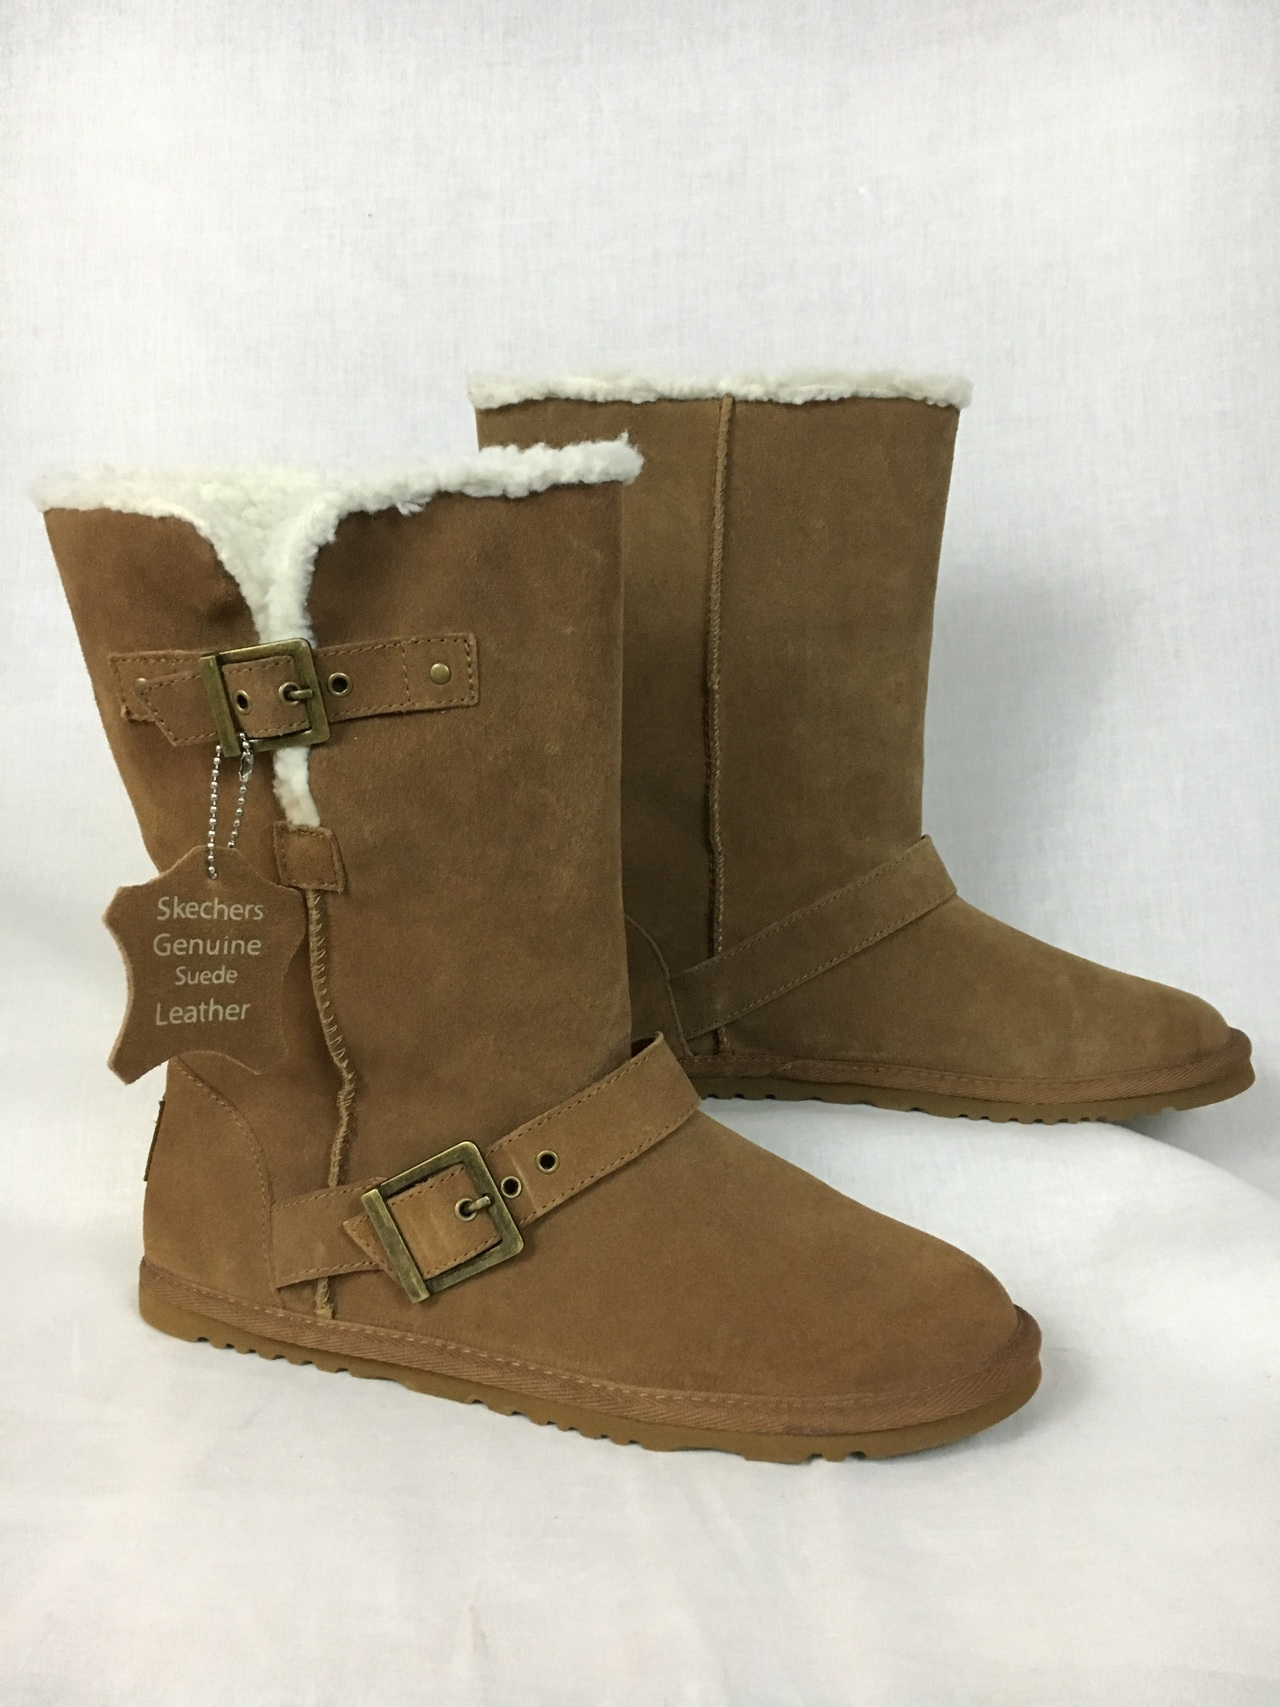 c272738e814 Details about Skechers Australia Womens Beige Flat Suede Mid-Calf Faux  Shearling Boots 10 NEW